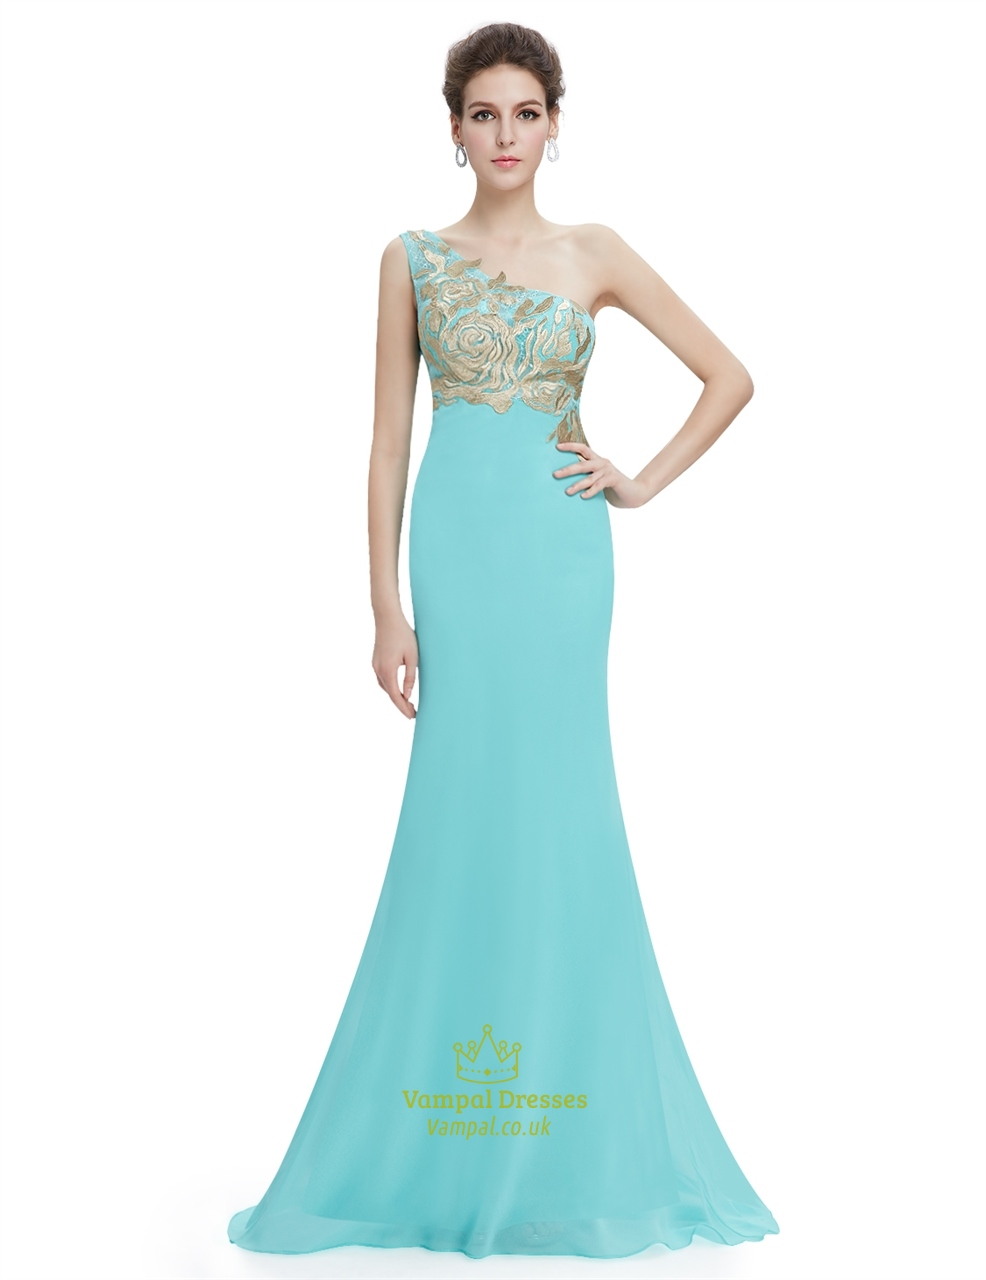 Mint Green One Shoulder Mermaid Chiffon Prom Dress With Gold Accents ...